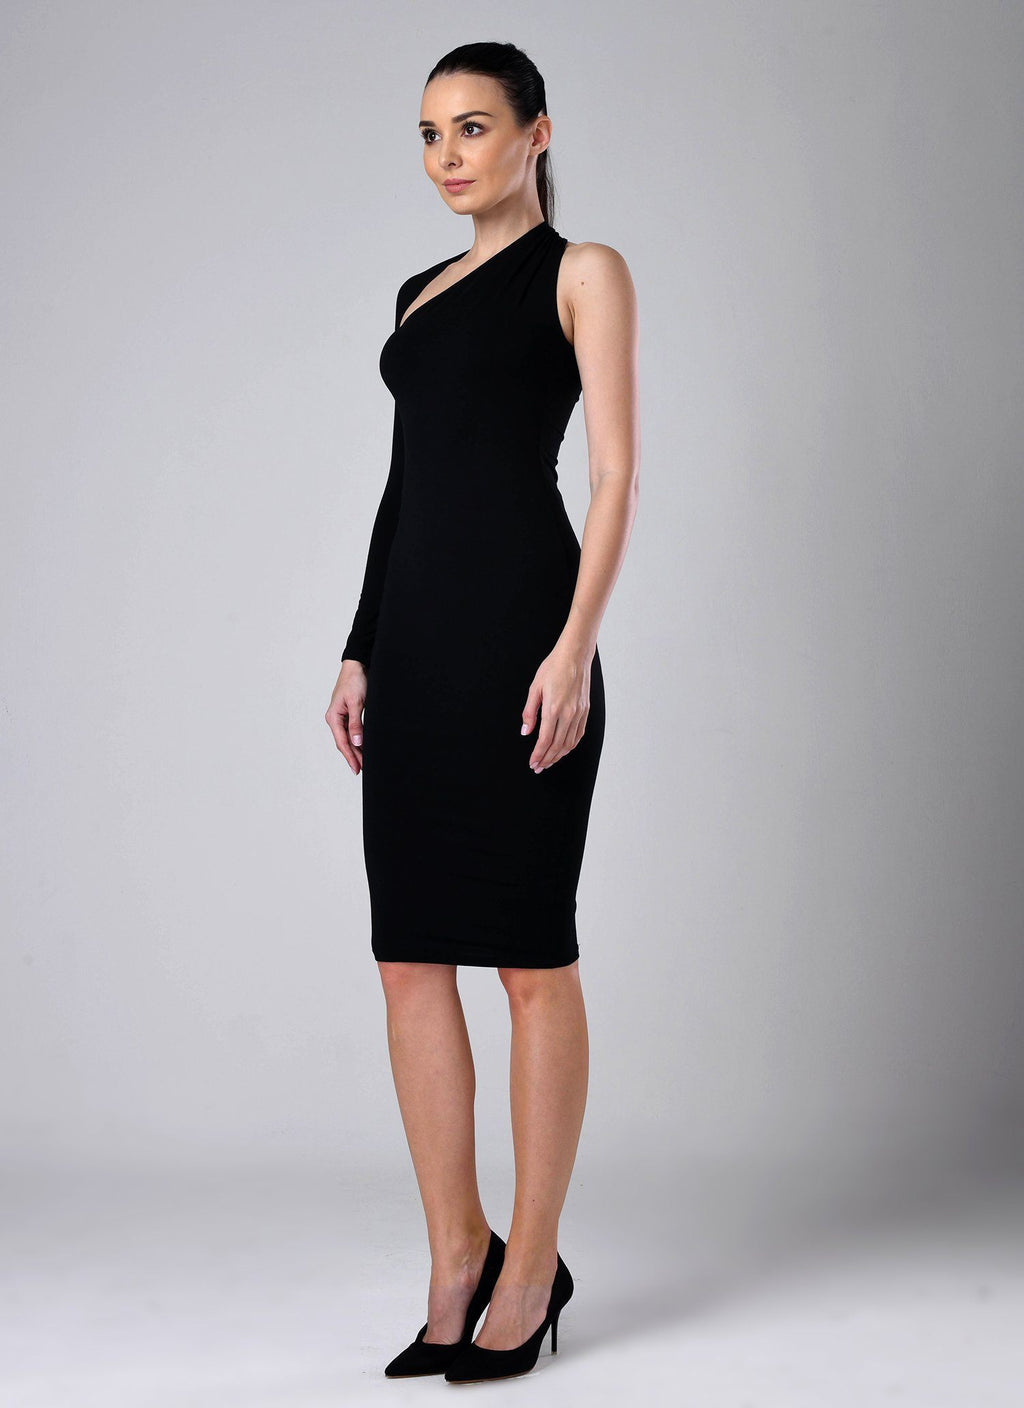 Dasha Modern Dress- Black Dresses Warehouse